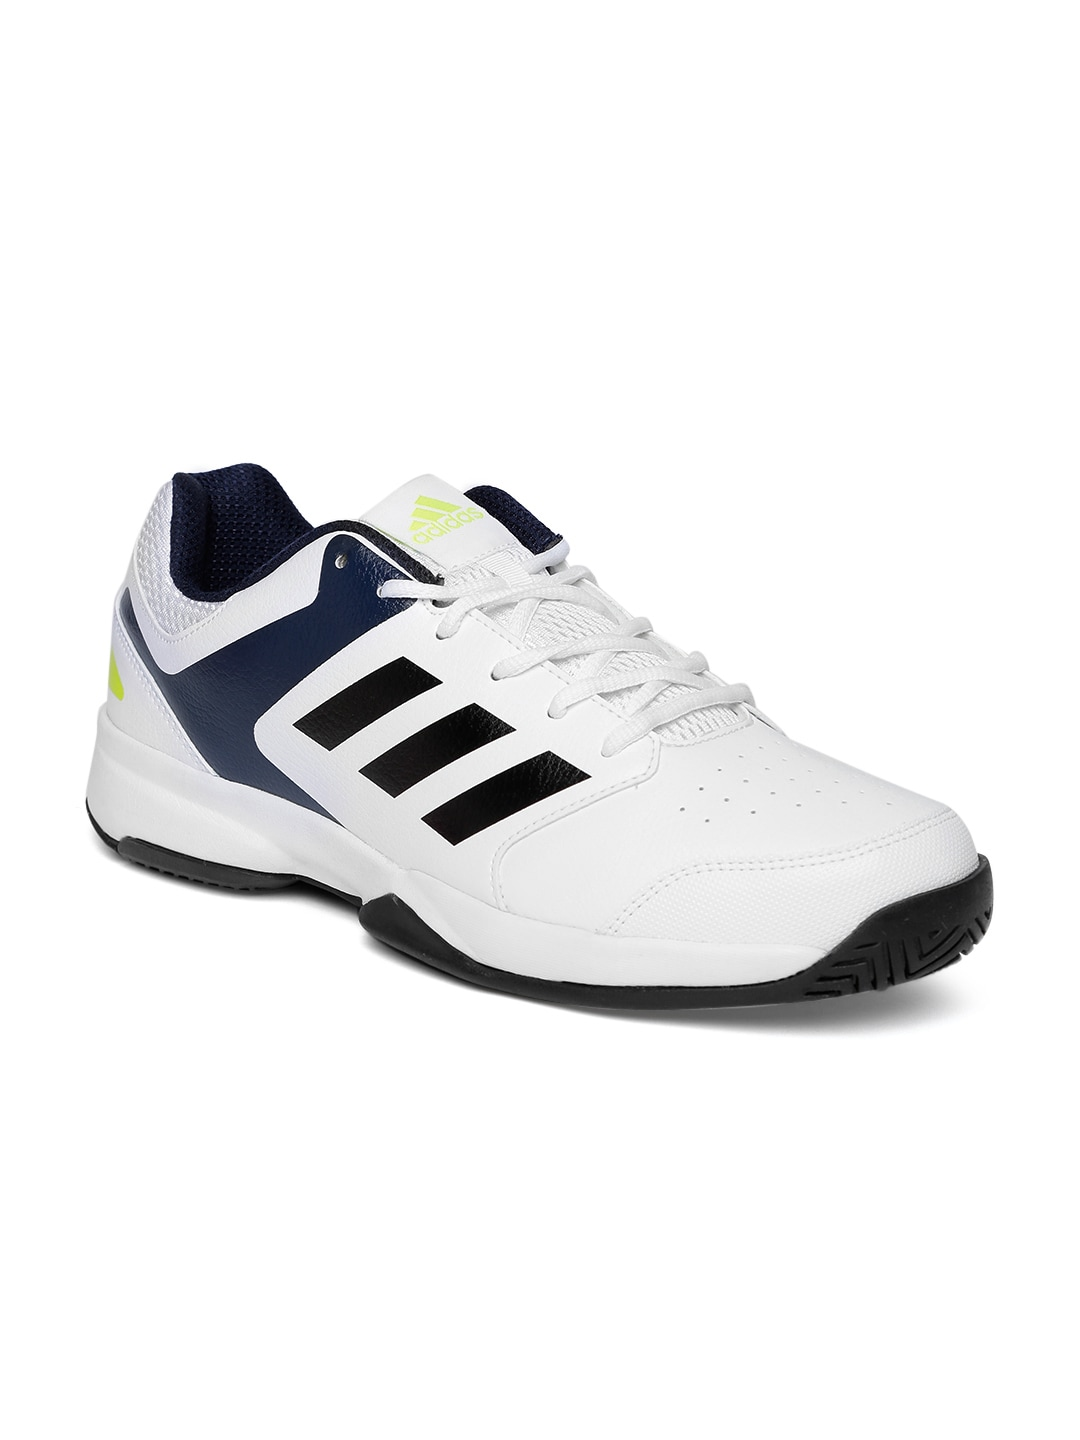 ba54e2e95535 Adidas Men Tennis Shoes - Buy Adidas Men Tennis Shoes online in India